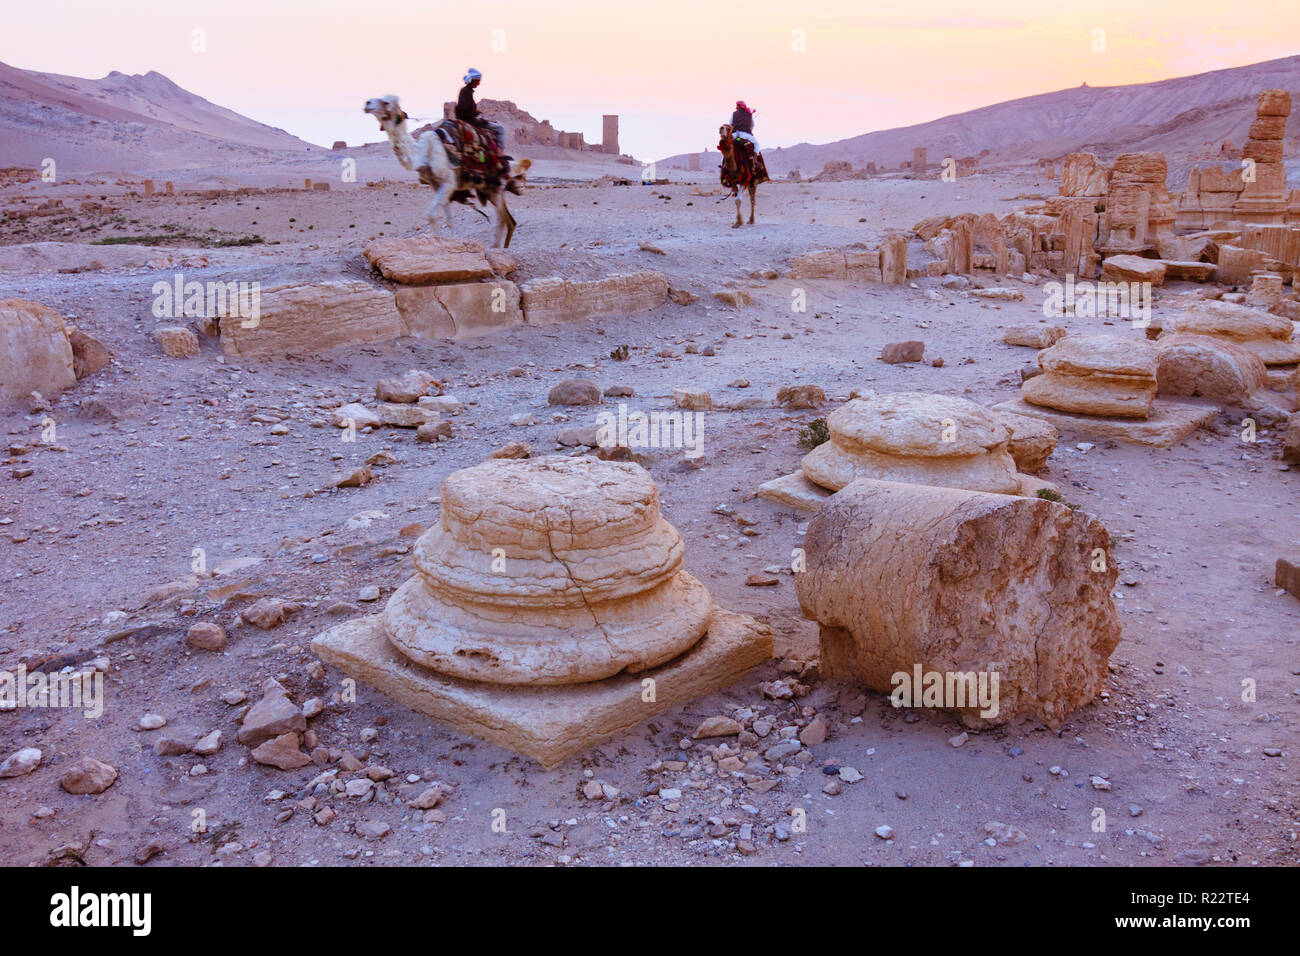 Palmyra, Homs Governorate, Syria - May 26th, 2009 : Bedouin men ride camels through the ruins of Palmyra at sunset. - Stock Image